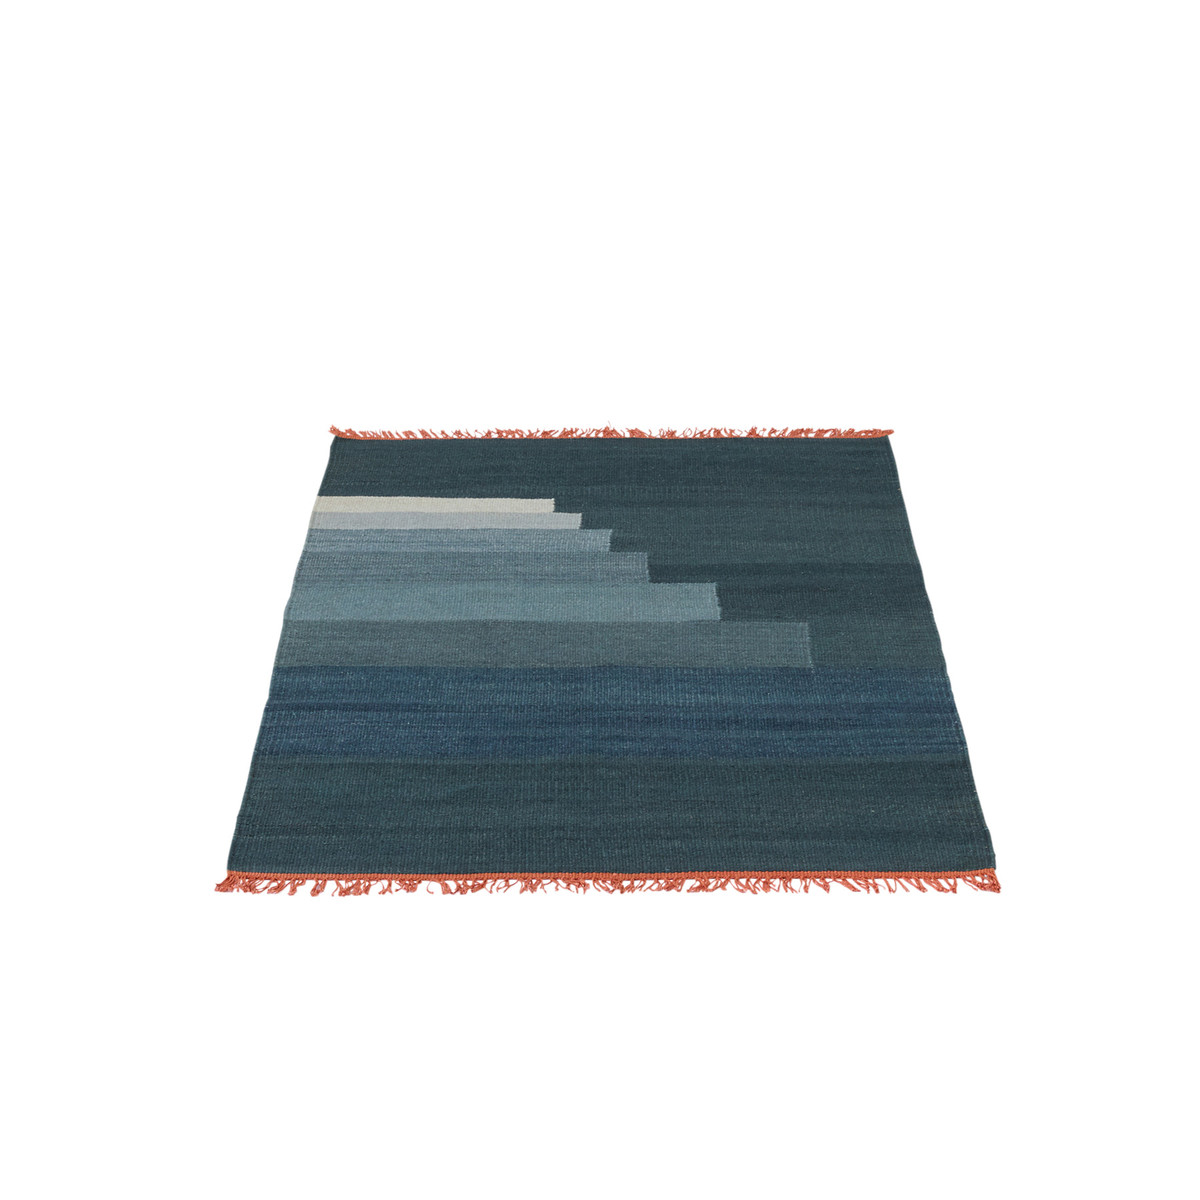 tradition another rug ap1 teppich 90 x 140 cm gewitterblau blau t 90 b 140 online kaufen. Black Bedroom Furniture Sets. Home Design Ideas